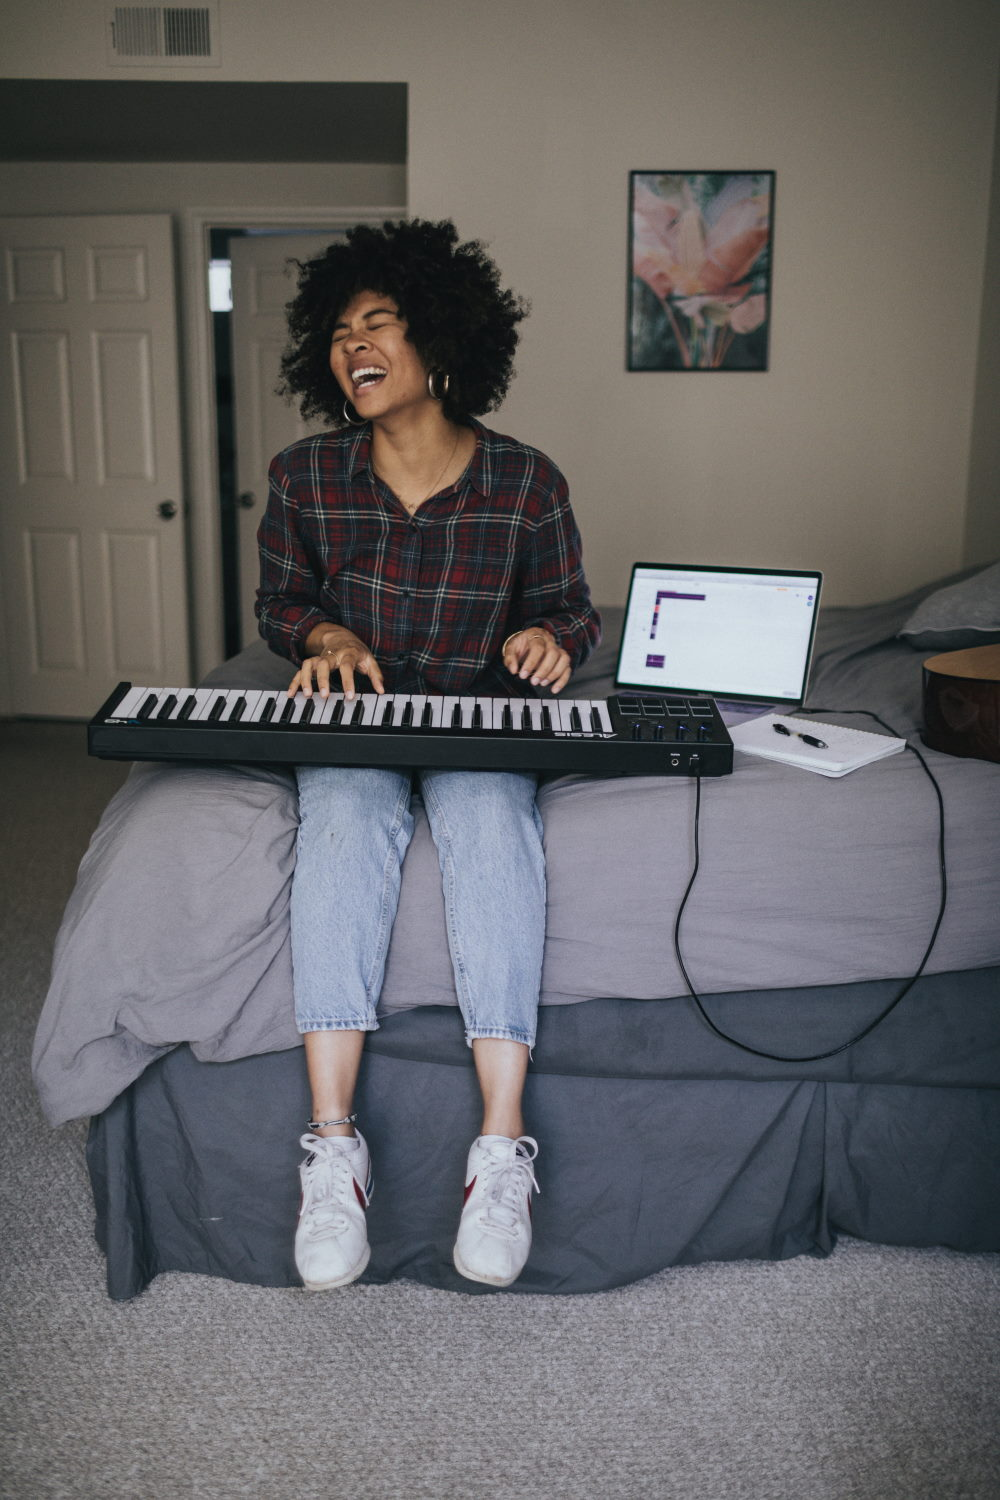 online piano keyboard lessons adults teenagers children worldwide